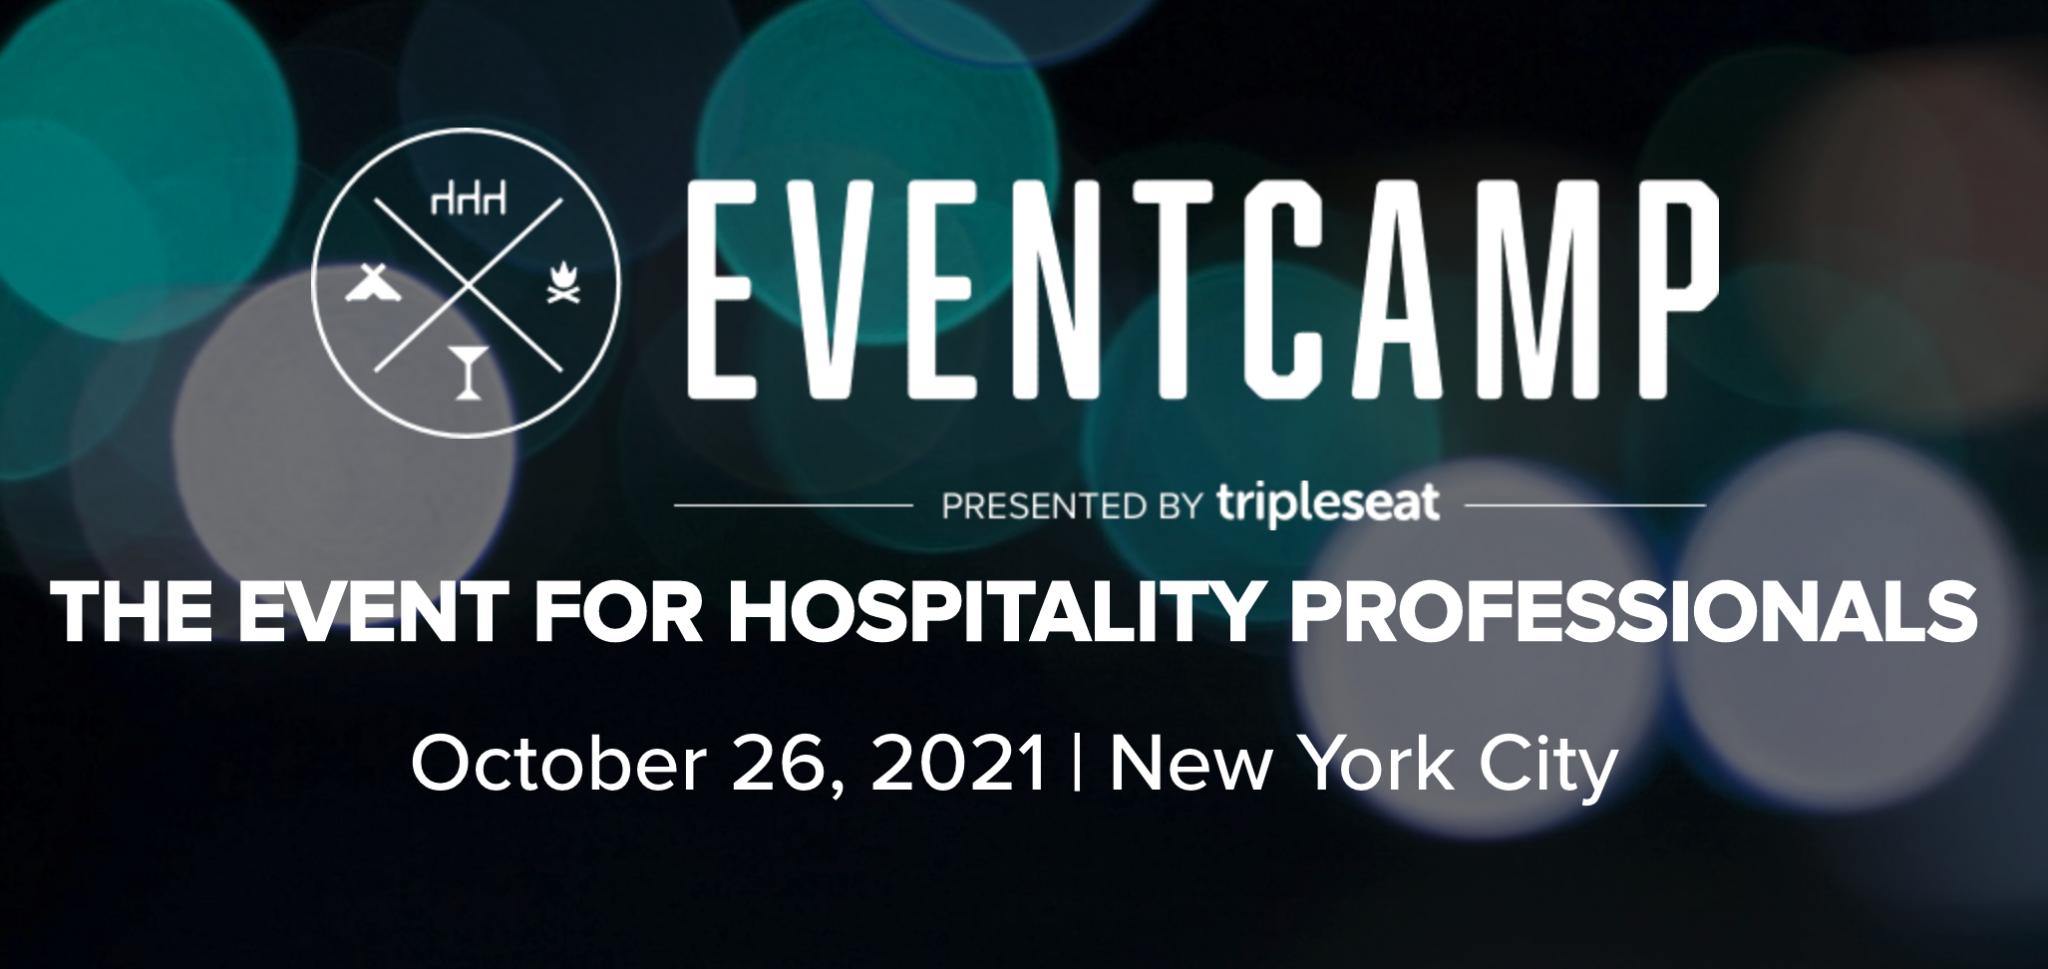 EventCamp: THE EVENT FOR HOSPITALITY PROFESSIONALS